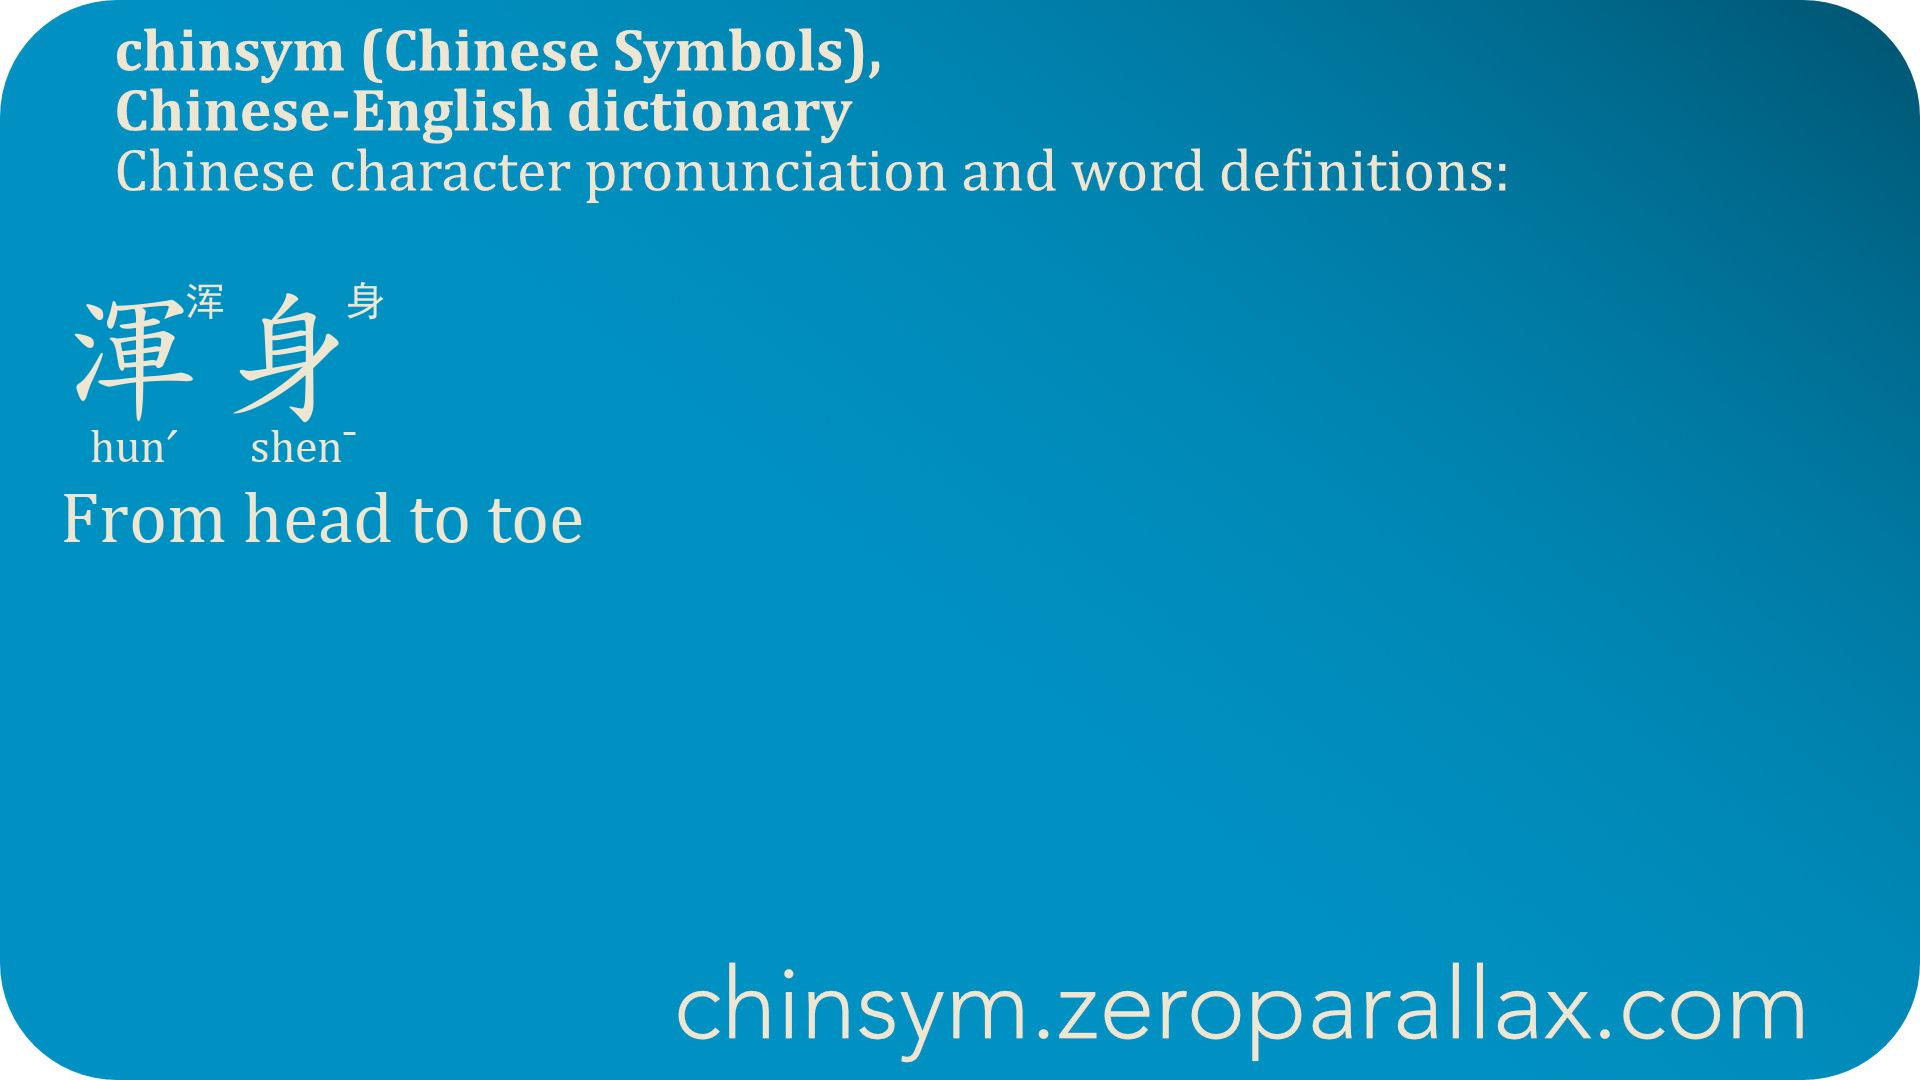 渾身  (hunˊ shen¯) 浑身 : From head to toe, Entire body. chinsym.zeroparallax.com